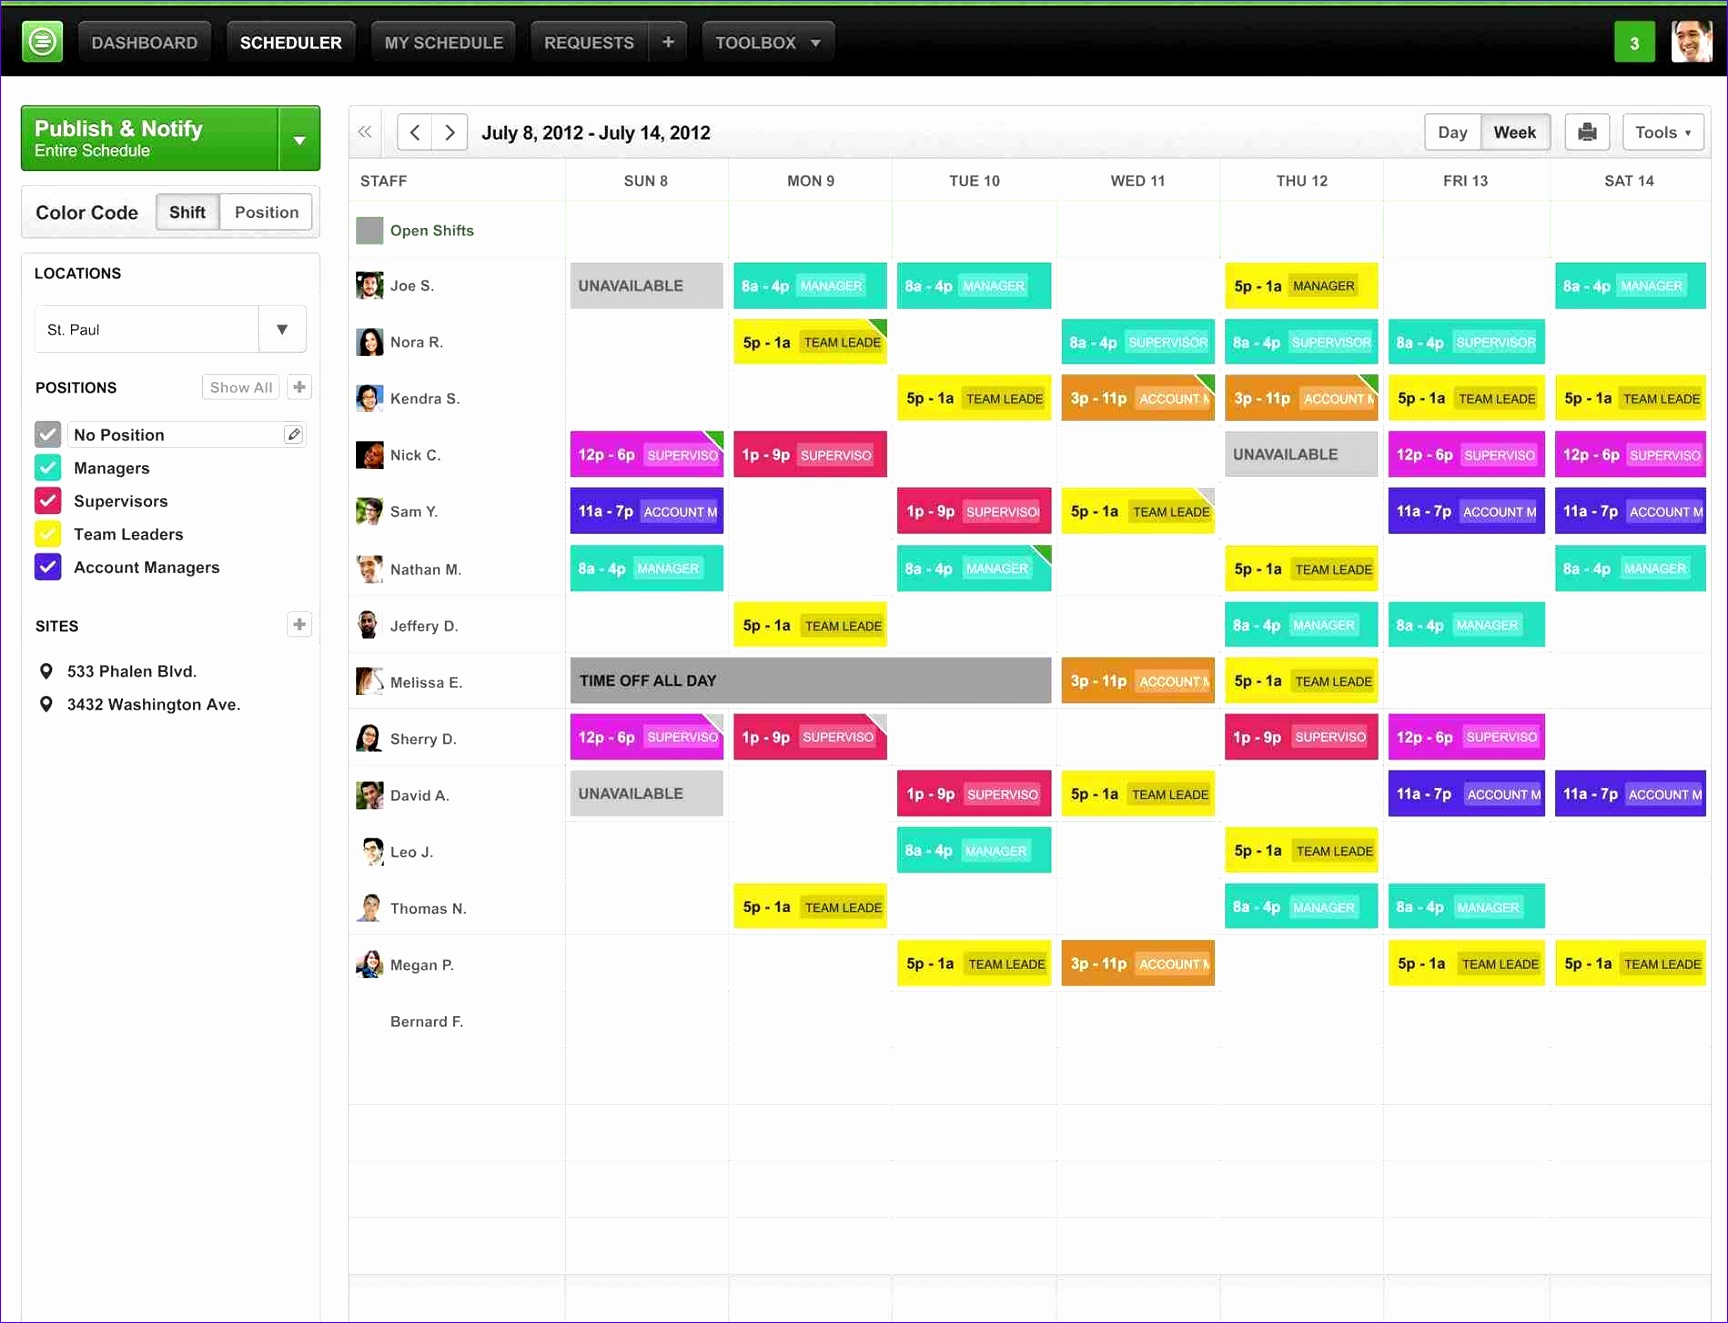 employee schedule templatepng scope of work monthly Monthly Employee Work Schedule Template Excel employee schedule templatepng scope of work free weekly templates for excel